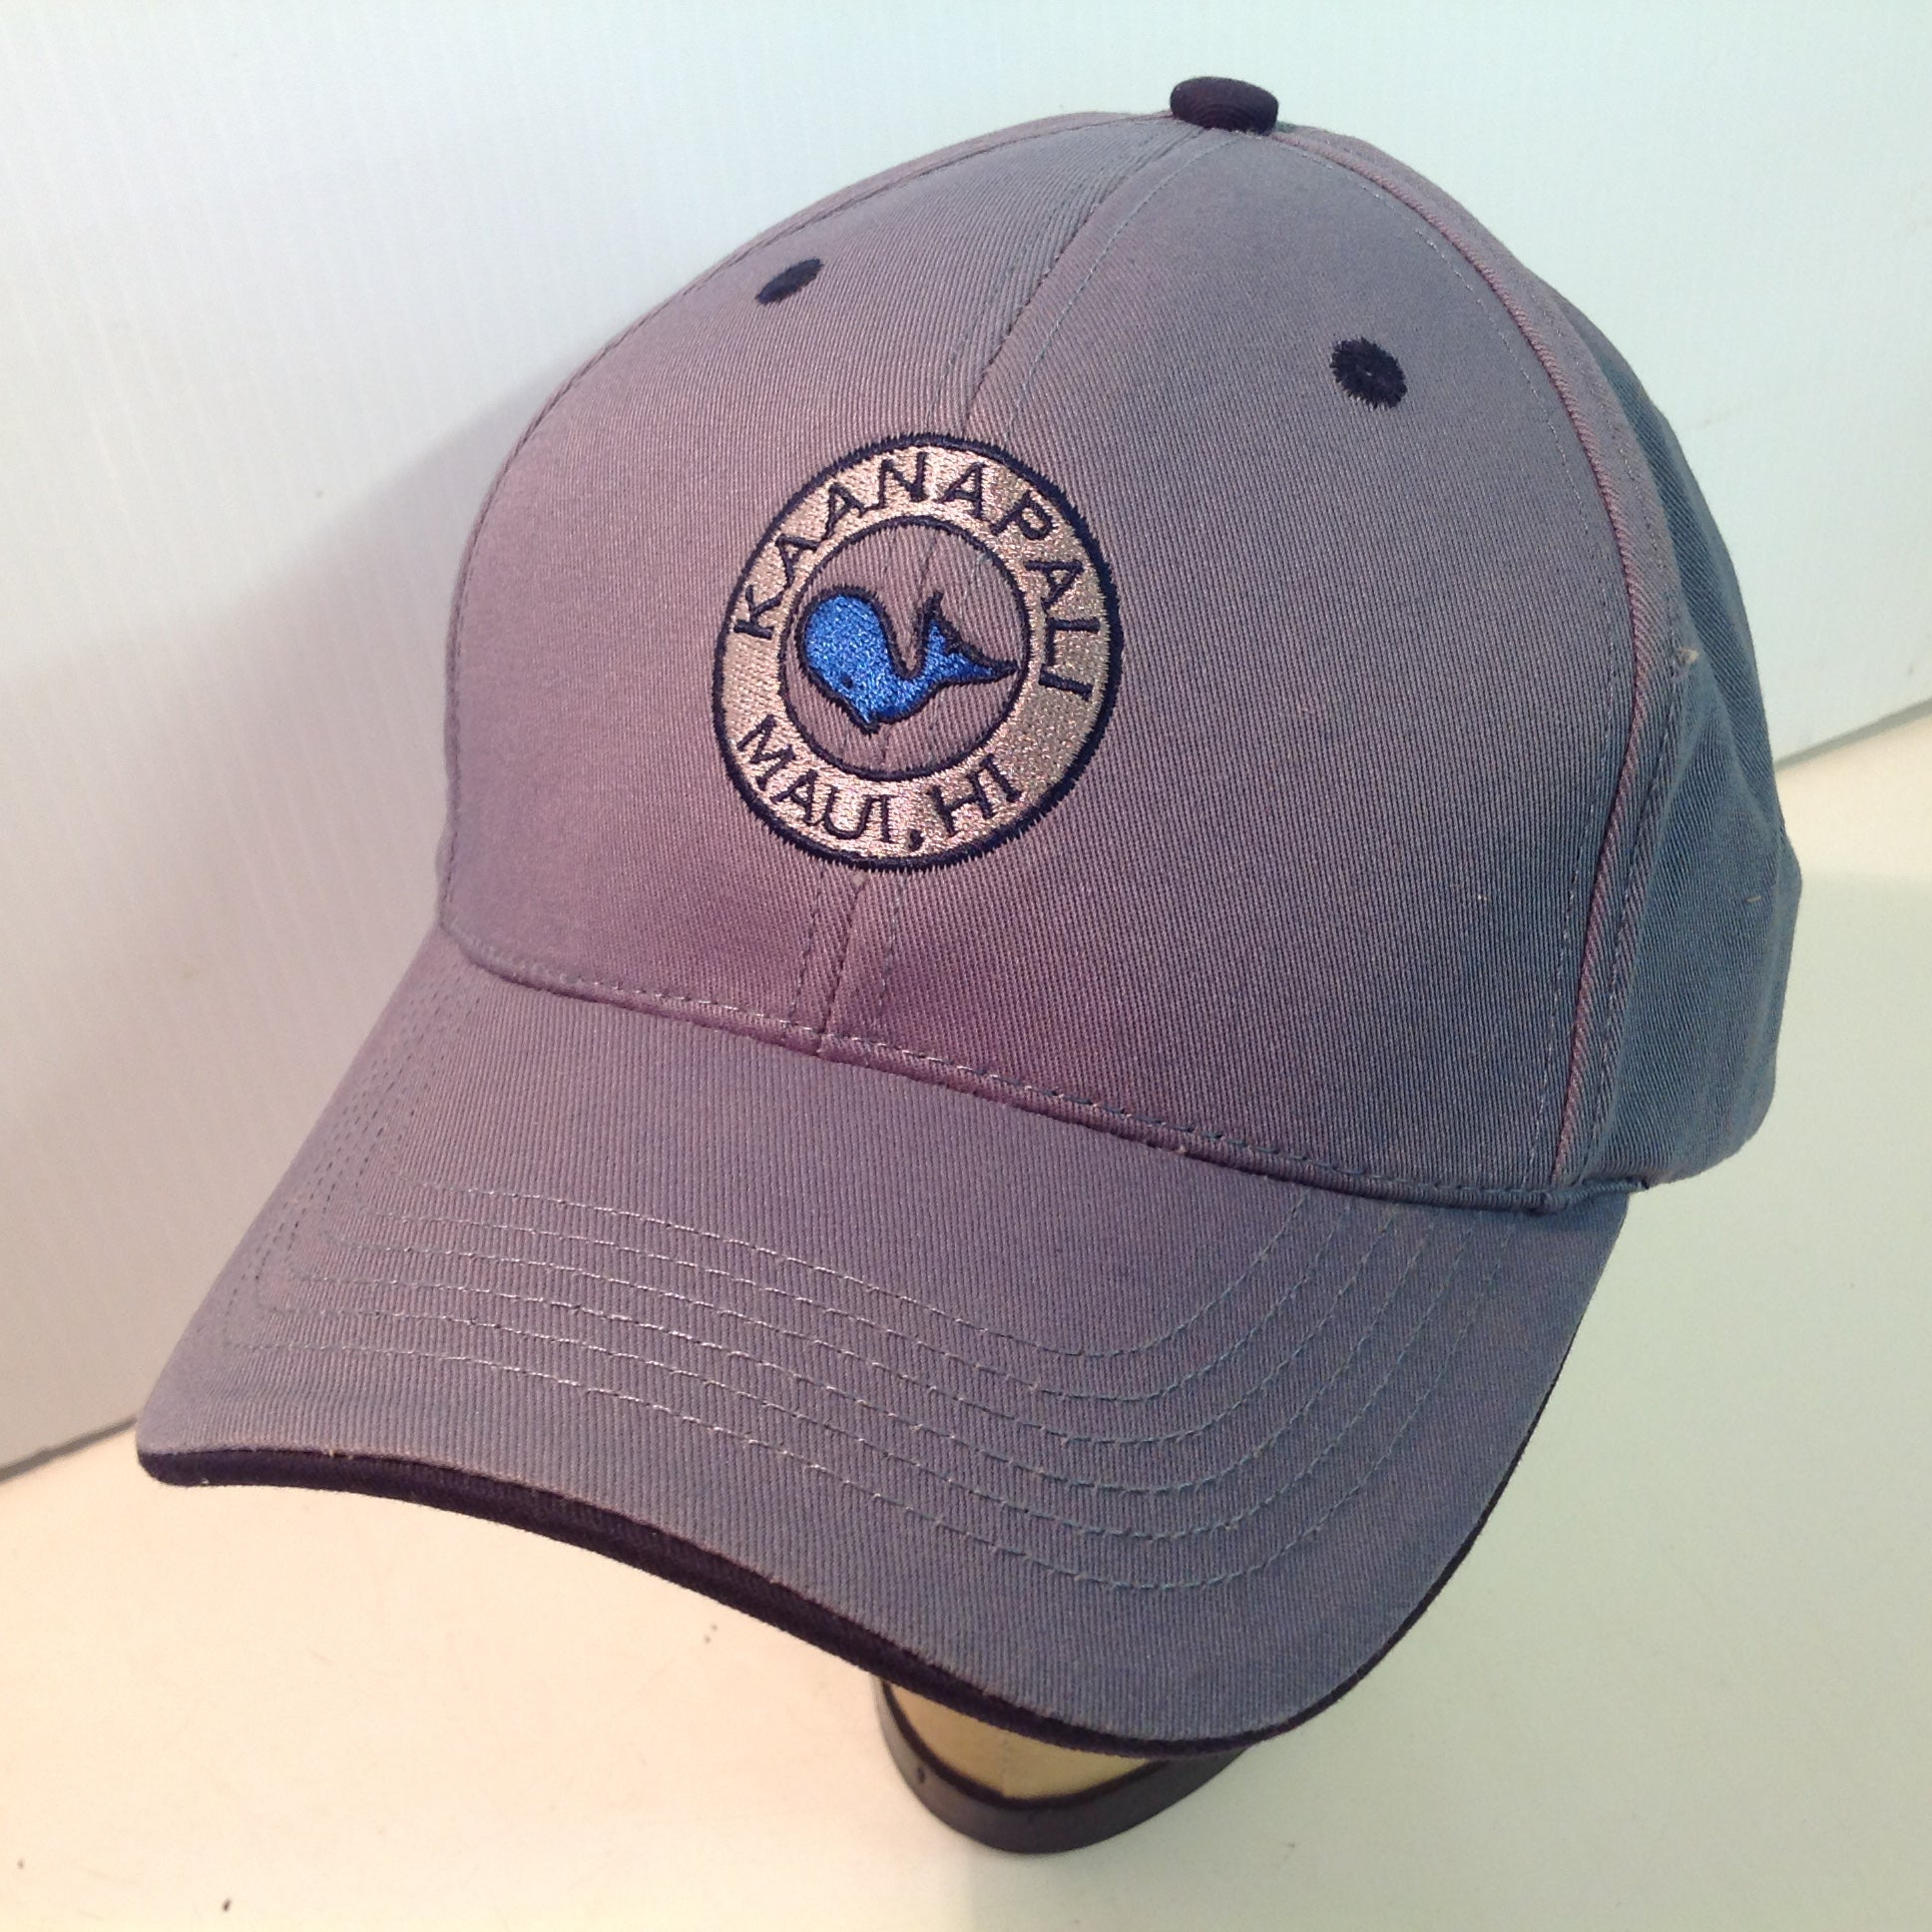 Vintage Texace PRO 98 Authentic Kaanapali Golf Course Lahaina Maui Hawaii Tournament Souvenir Blue-Grey Baseball Cap